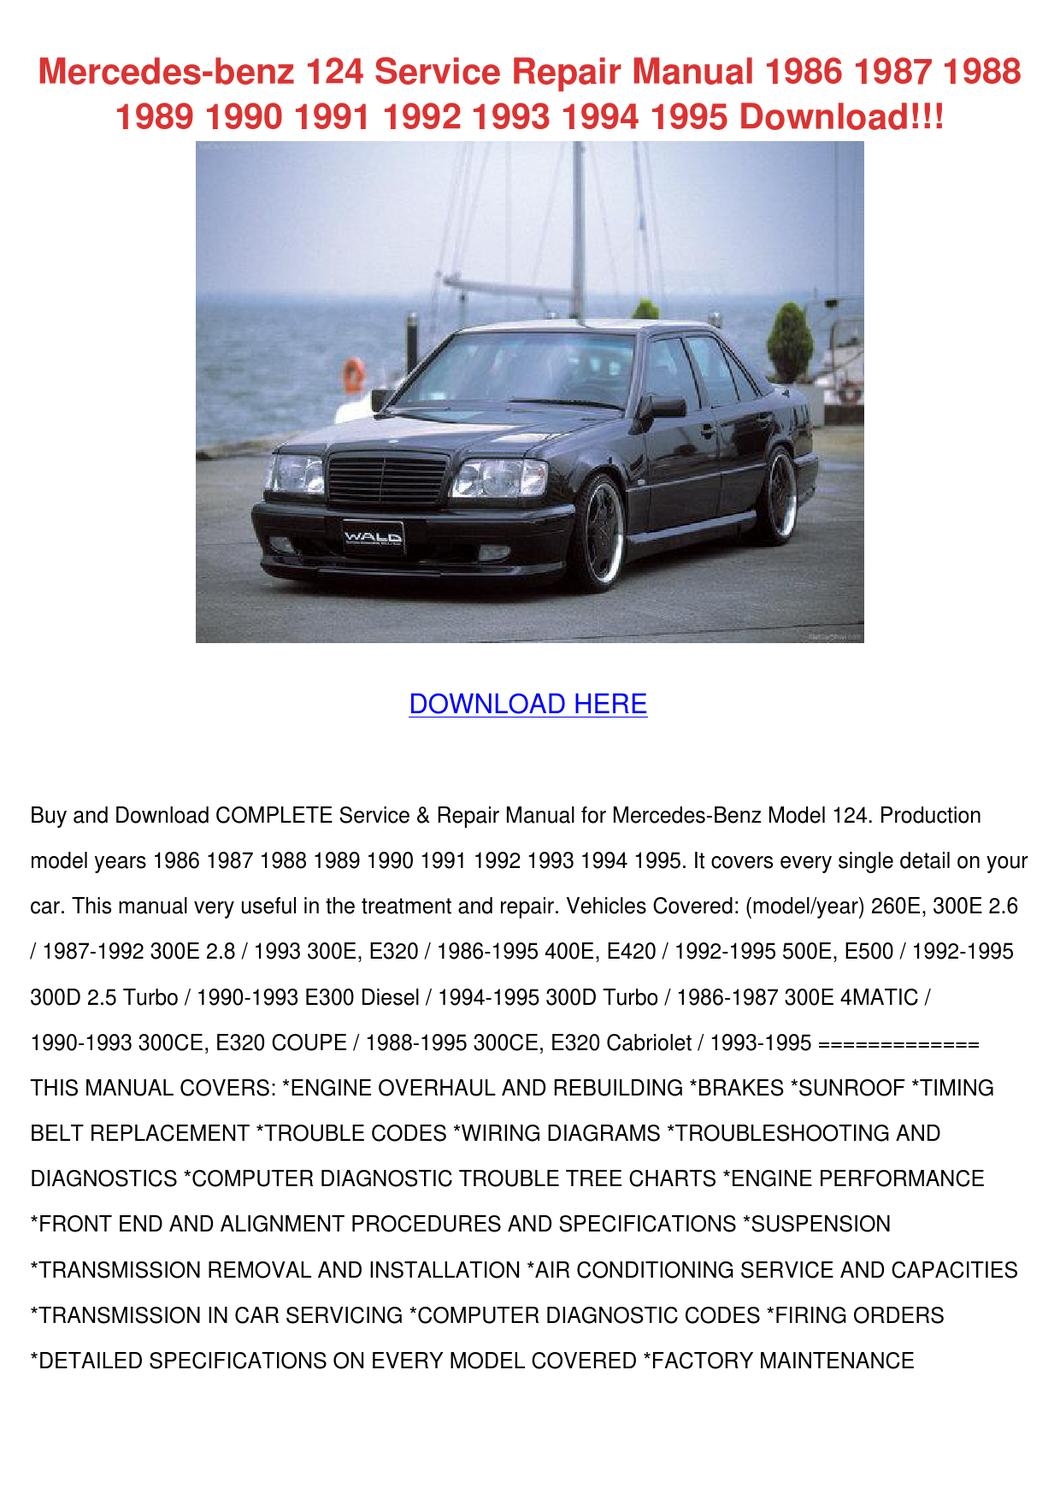 Mercedes Benz 124 Service Repair Manual 1986 by ...